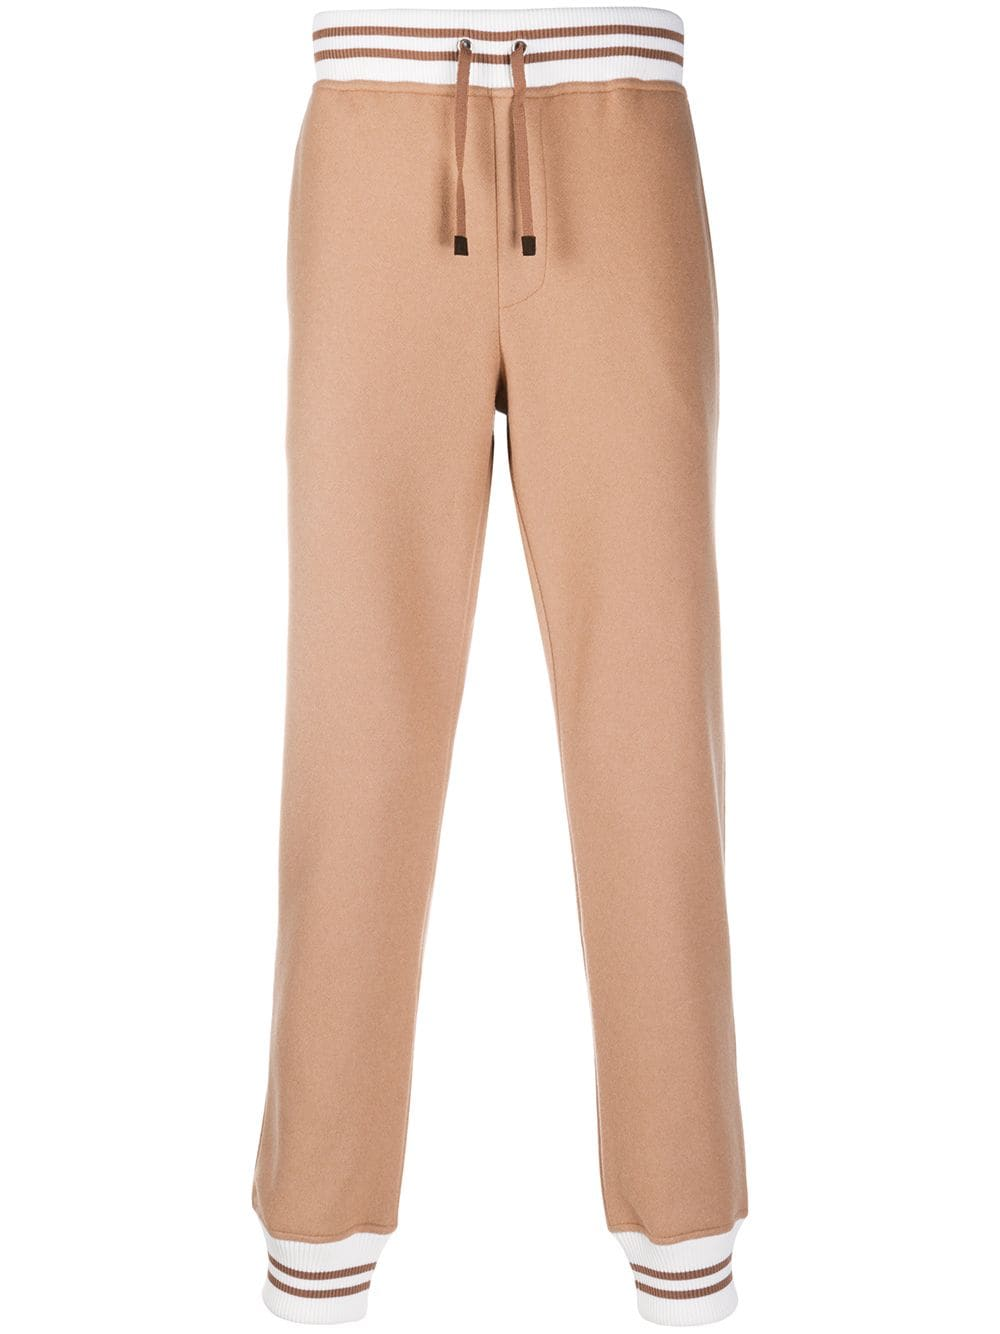 Camel brown and white wool-blend track trousers featuring knitted construction ELEVENTY |  | B71PANB02-TES0B19704